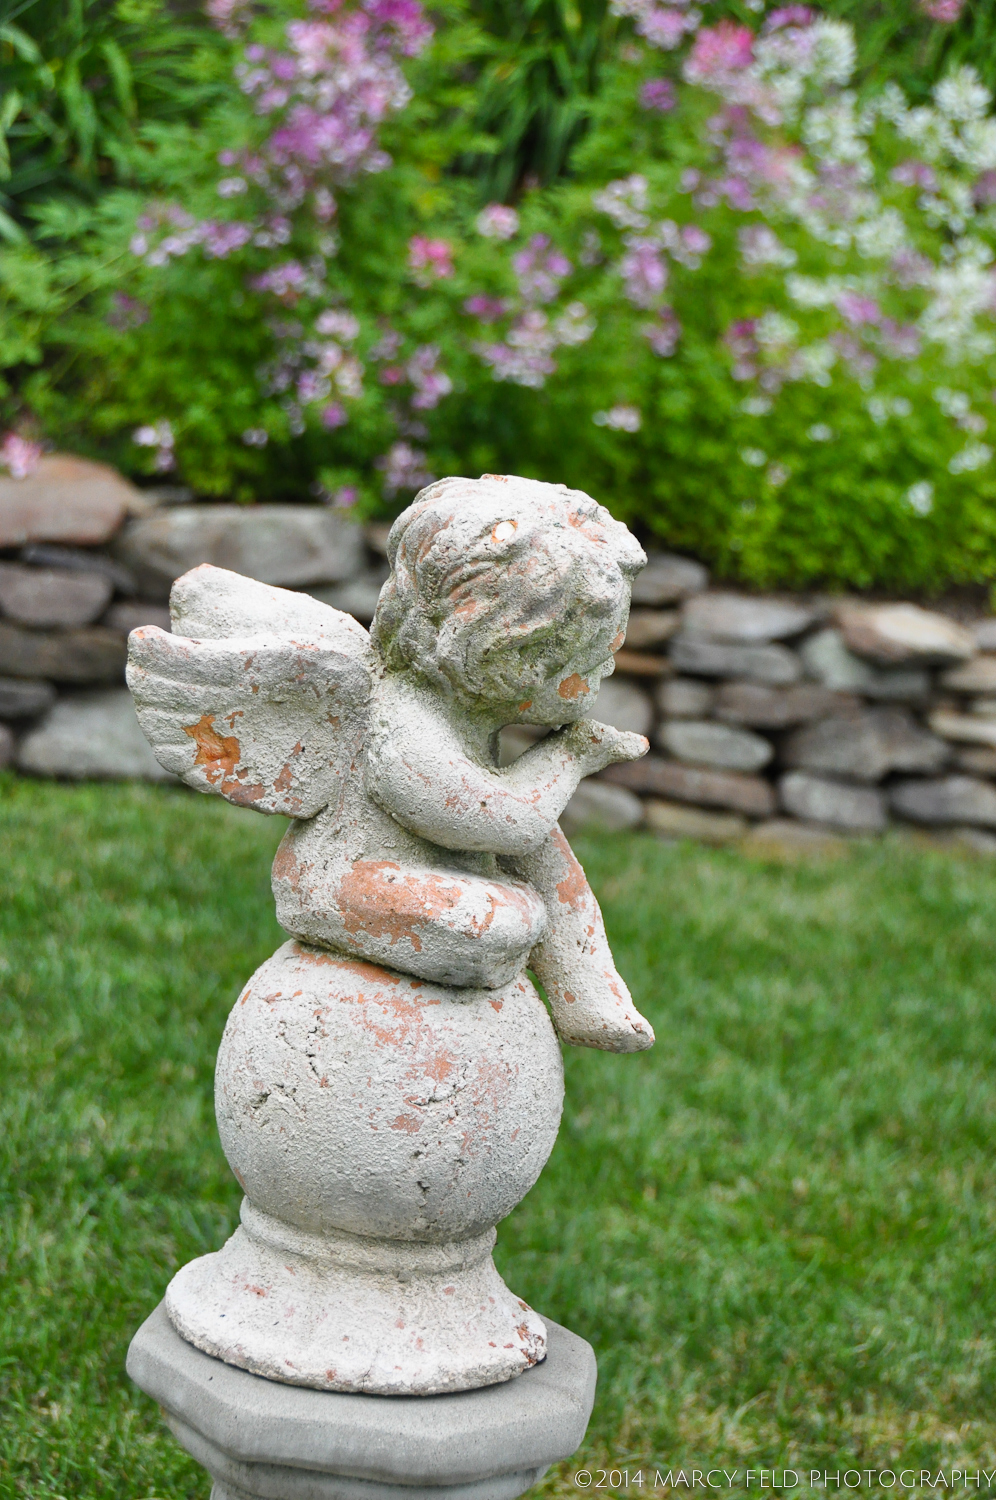 Sweet little cherub which was the first purchase after the pool installation